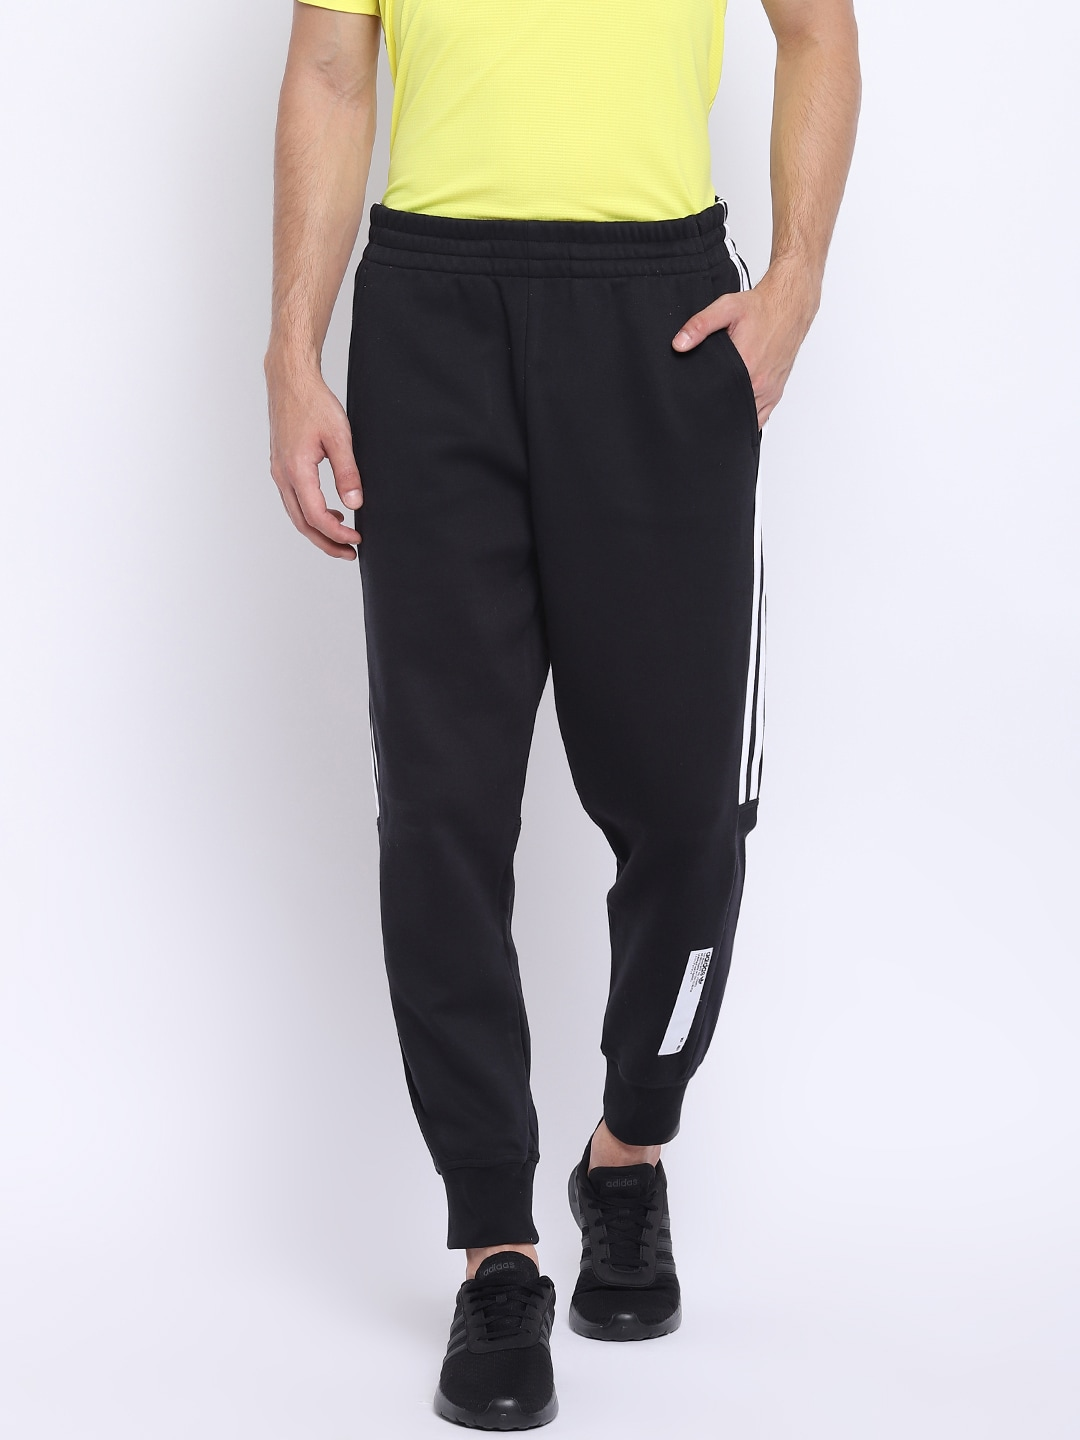 0cb272ed8 adidas - Exclusive adidas Online Store in India at Myntra